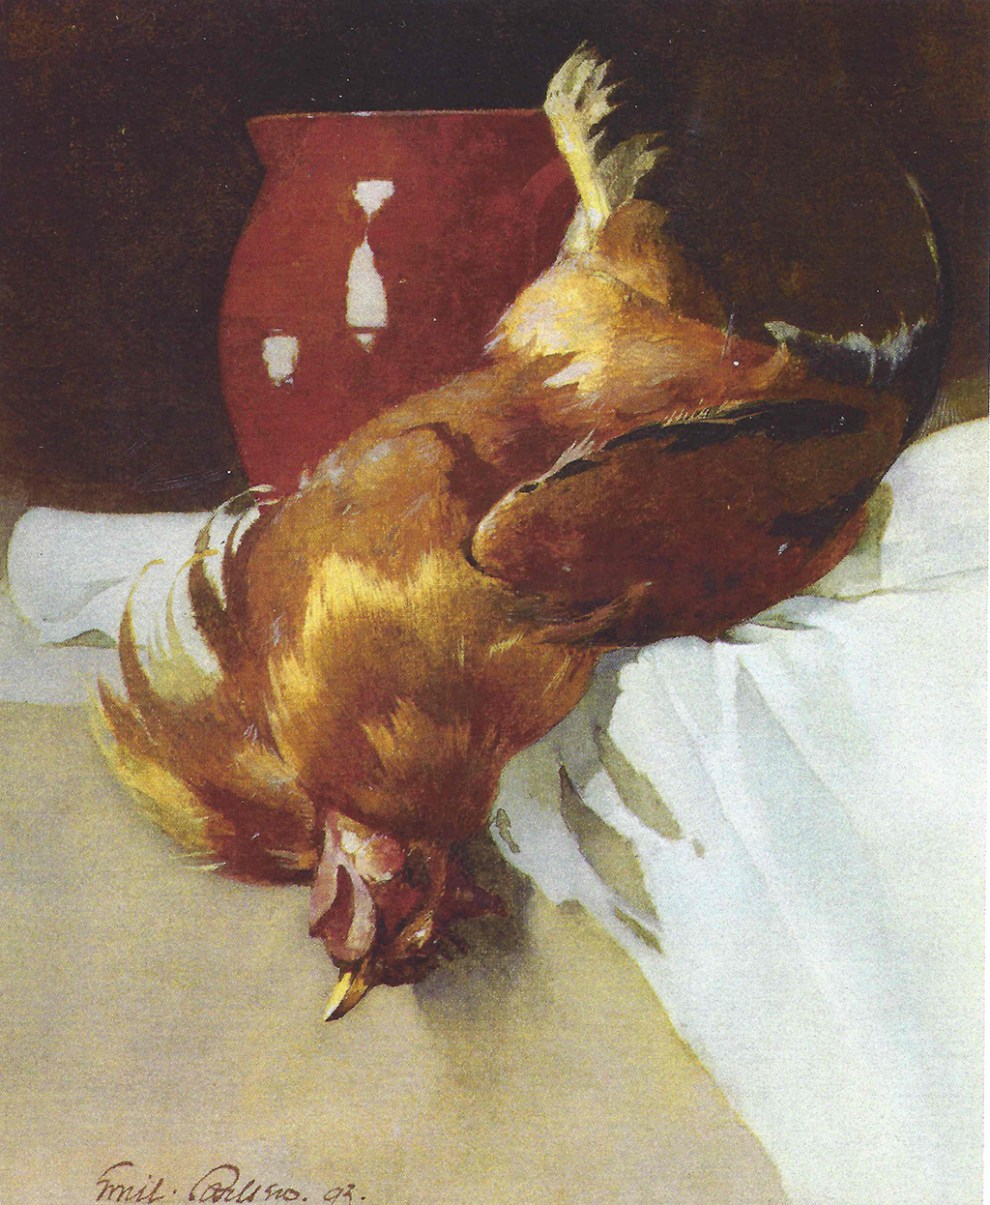 Red Jug and Chicken (also called Still life (52)), 1893